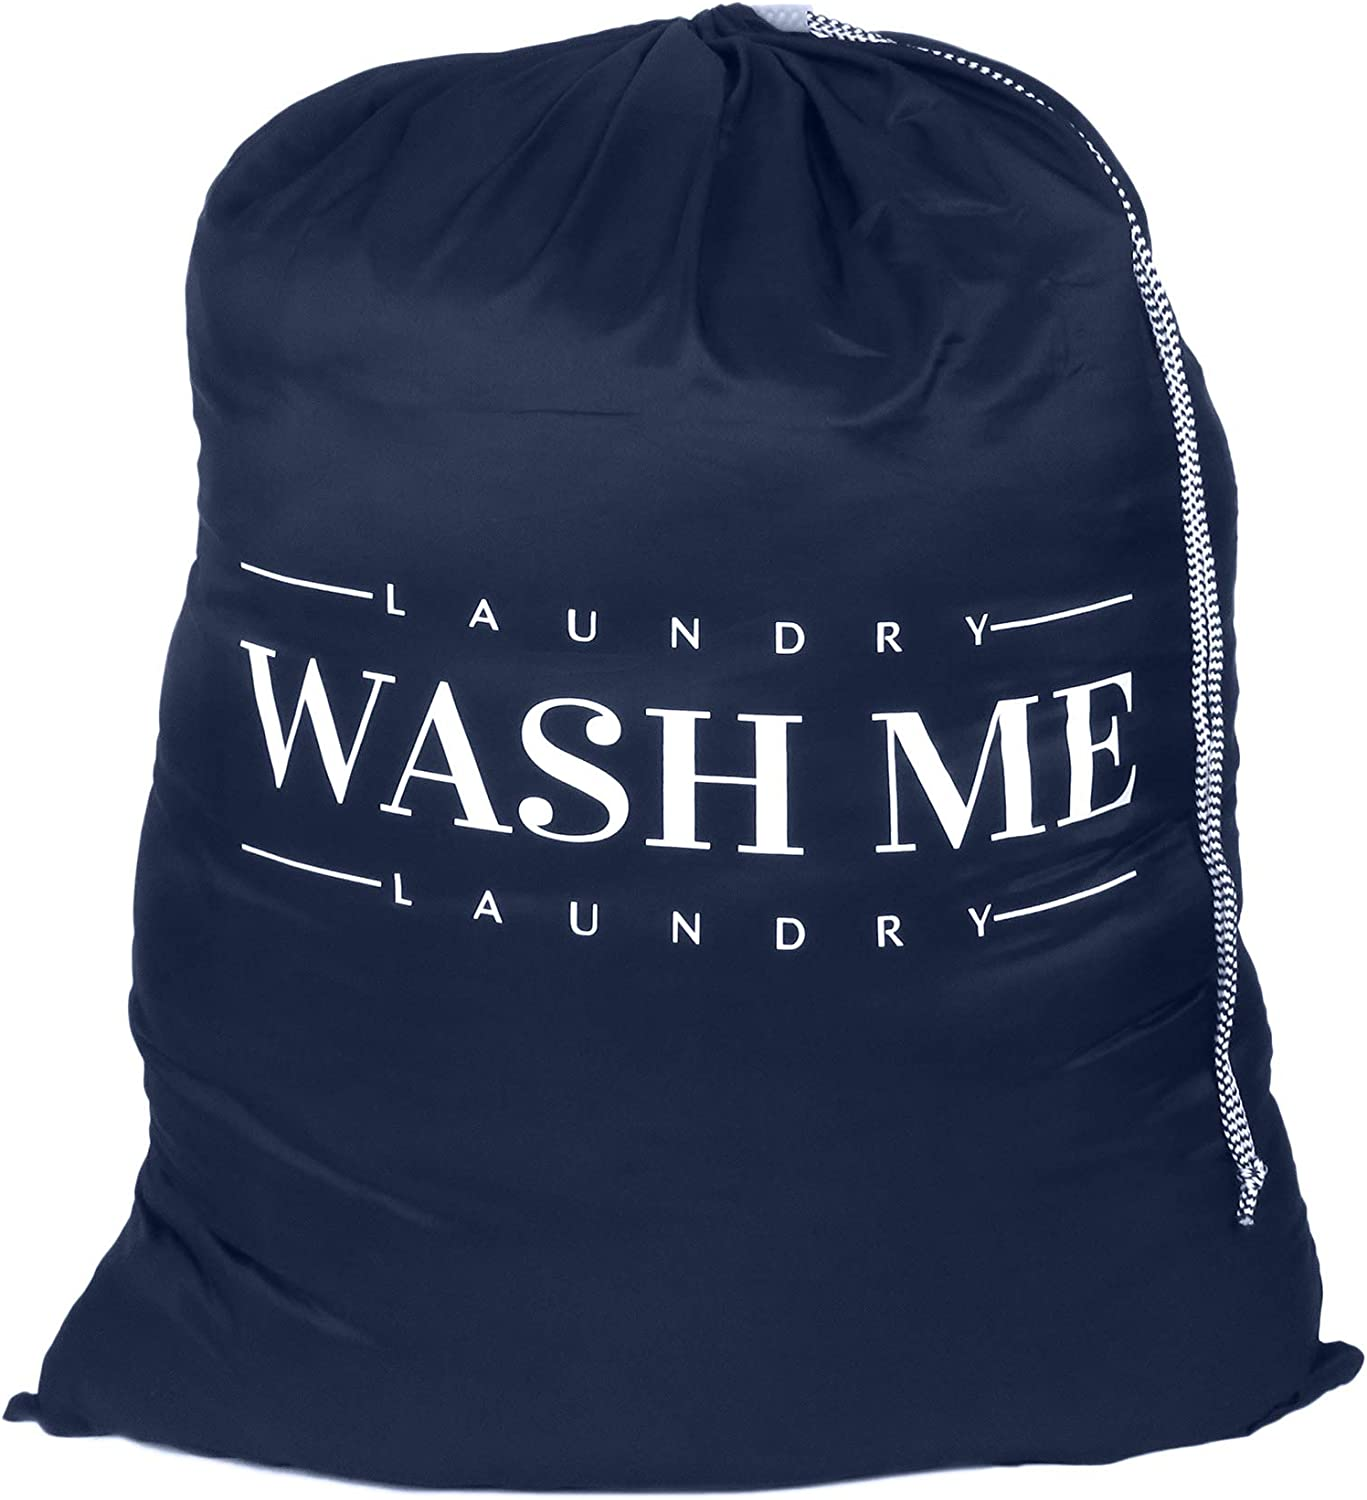 Oussum Travel Laundry Bag Dirty Laundry Bags Heavy Duty Polyester Laundry Bag Machine Washable Large Dirty Clothes Organizer with Backpack Drawstring (Navy Blue-Wash Me)